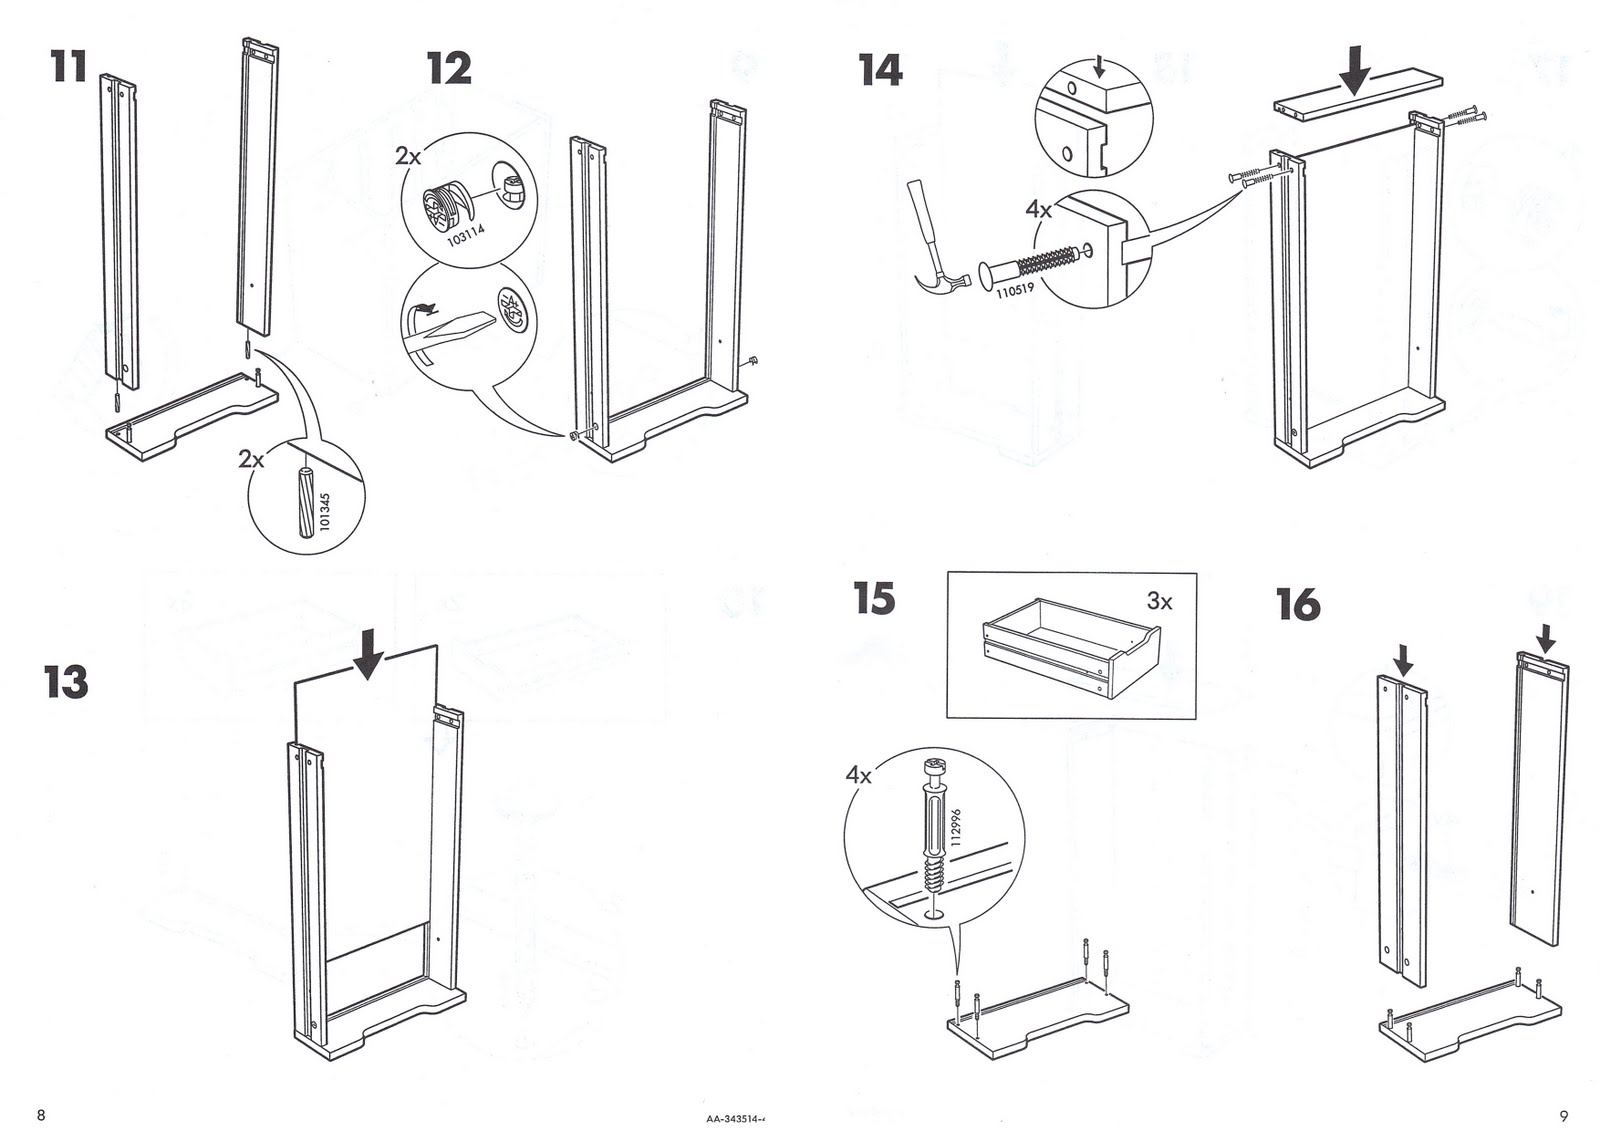 ikea wall anchor instructions